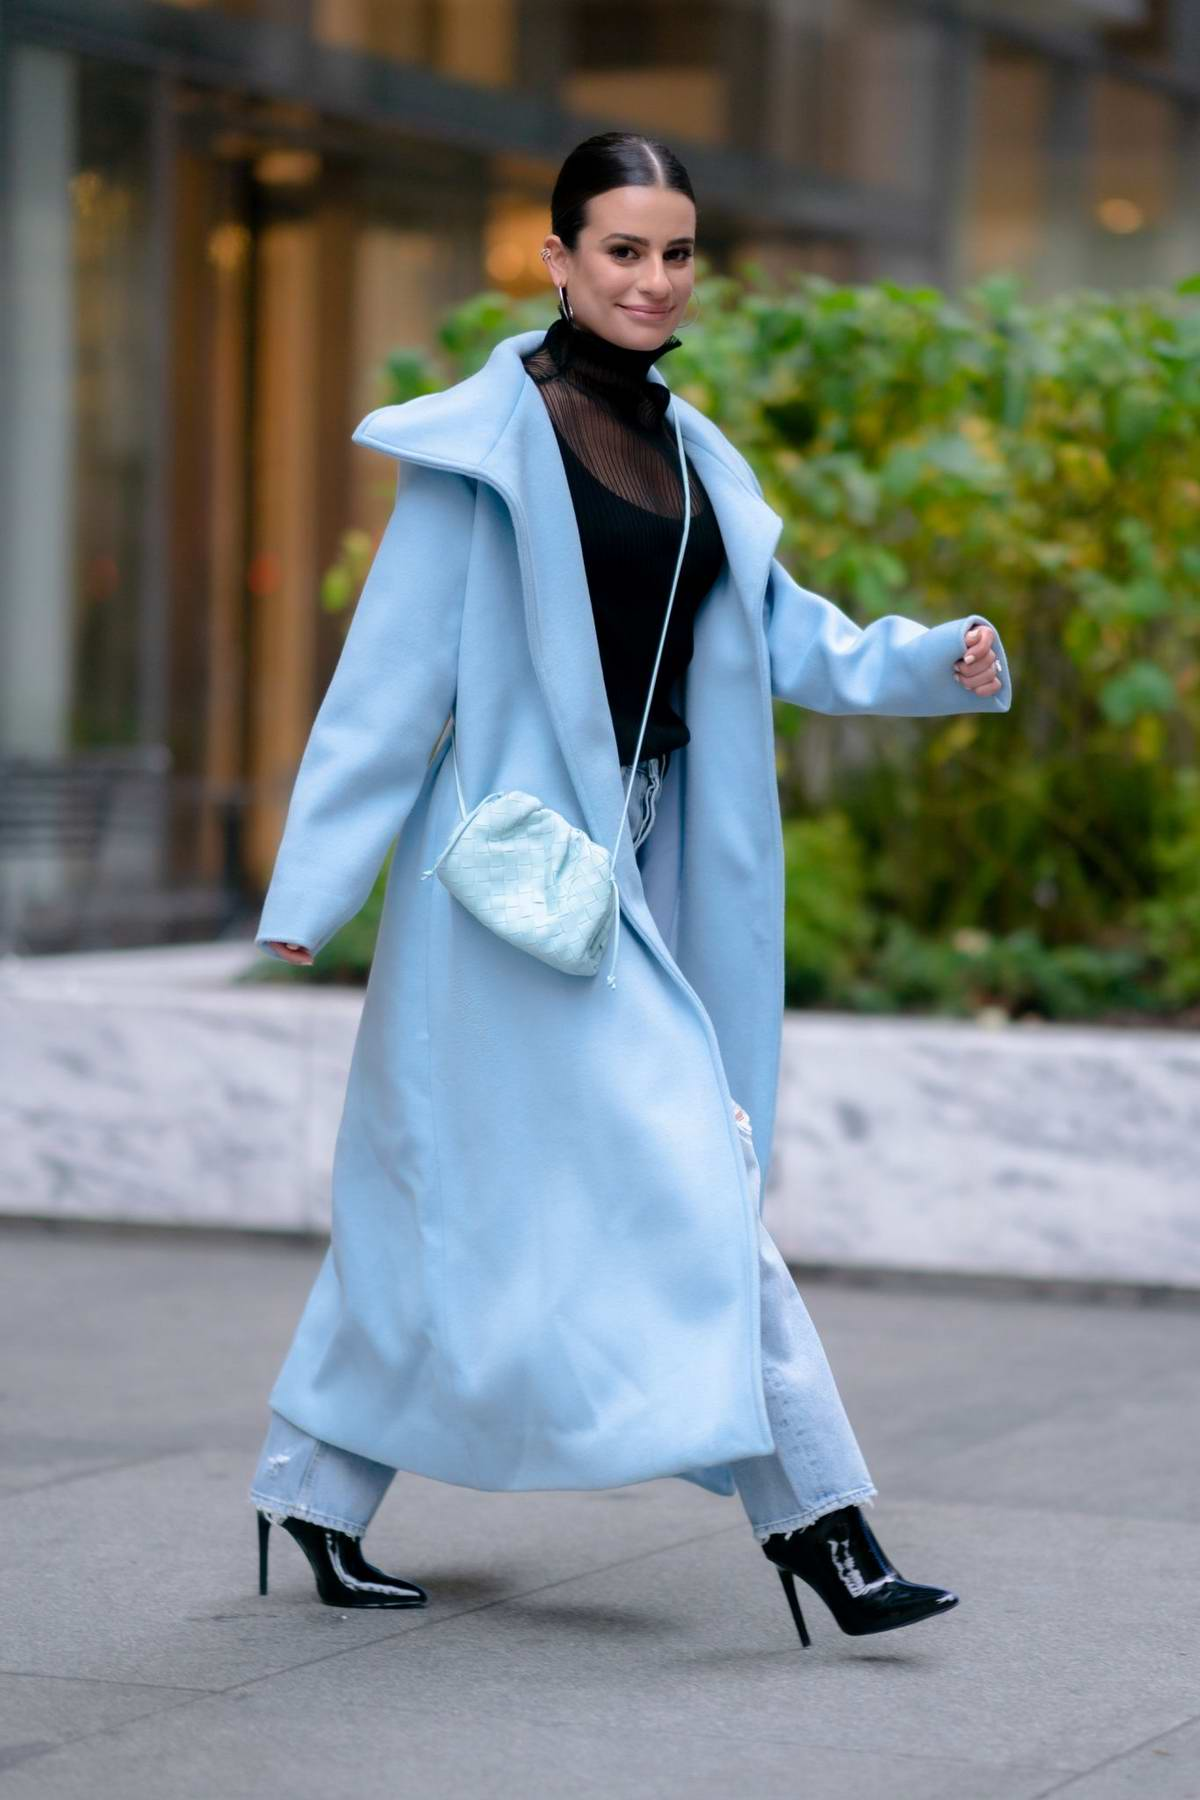 Lea Michele looks stylish in an ice blue long coat with a black top and jeans while out in Midtown, New York City